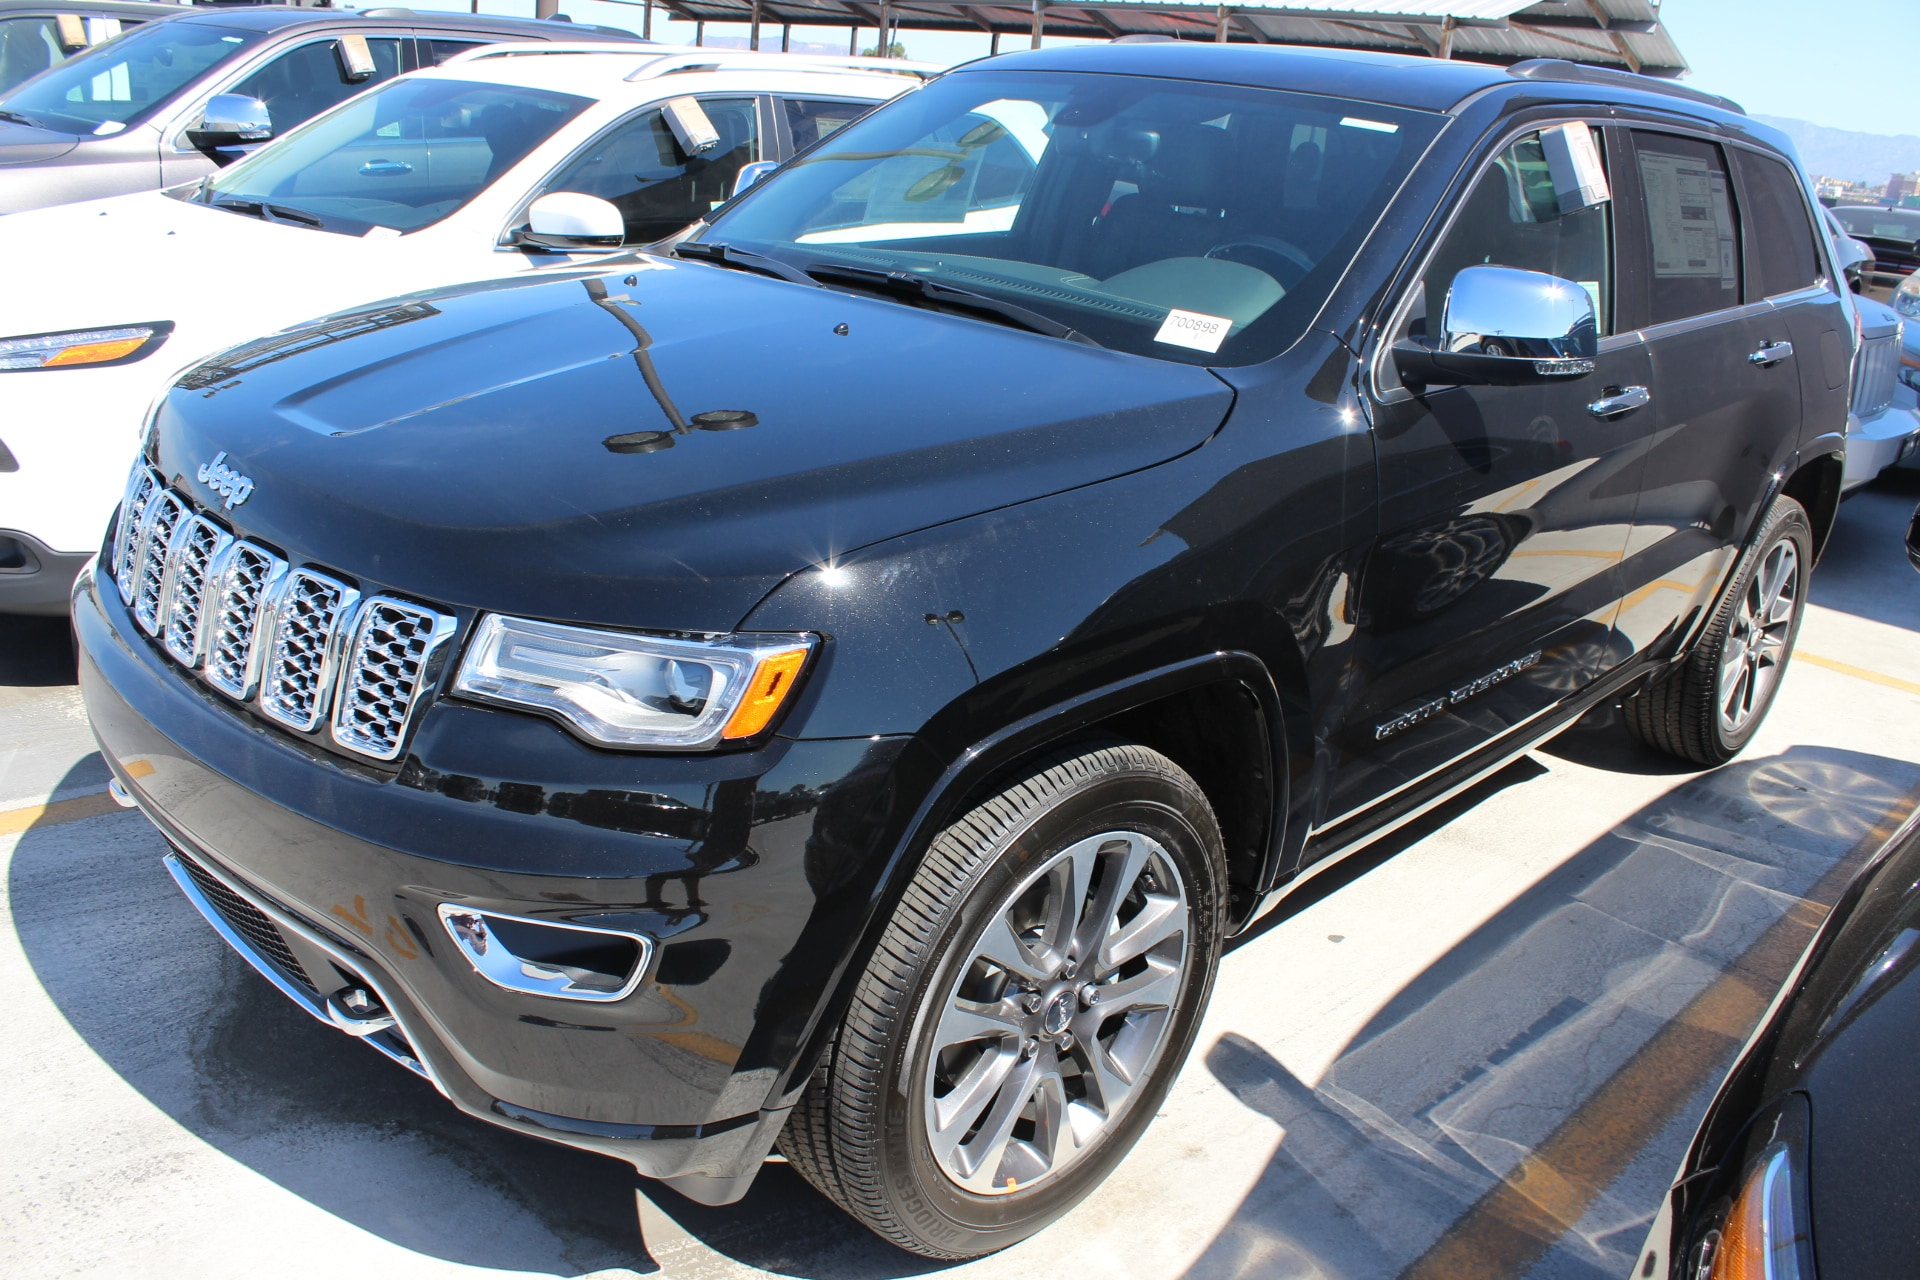 2017 Jeep Grand Cherokee Overland RWD These 2017 Jeep Grand Cherokees are priced to GO and are ver